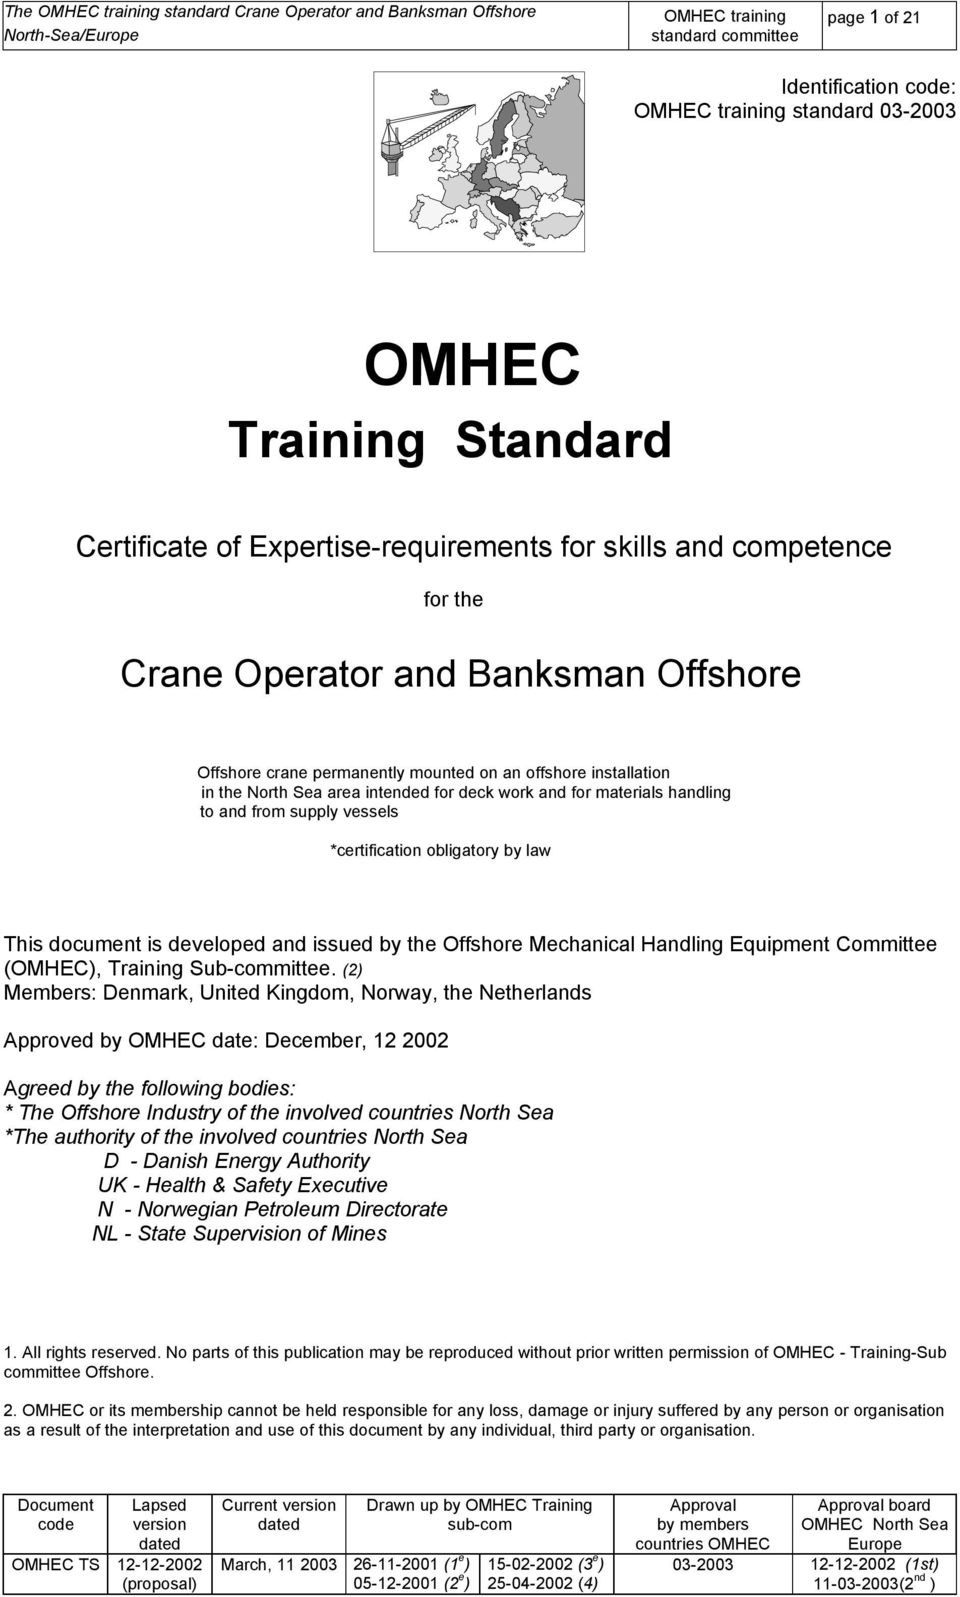 offshore platform safety training pdf